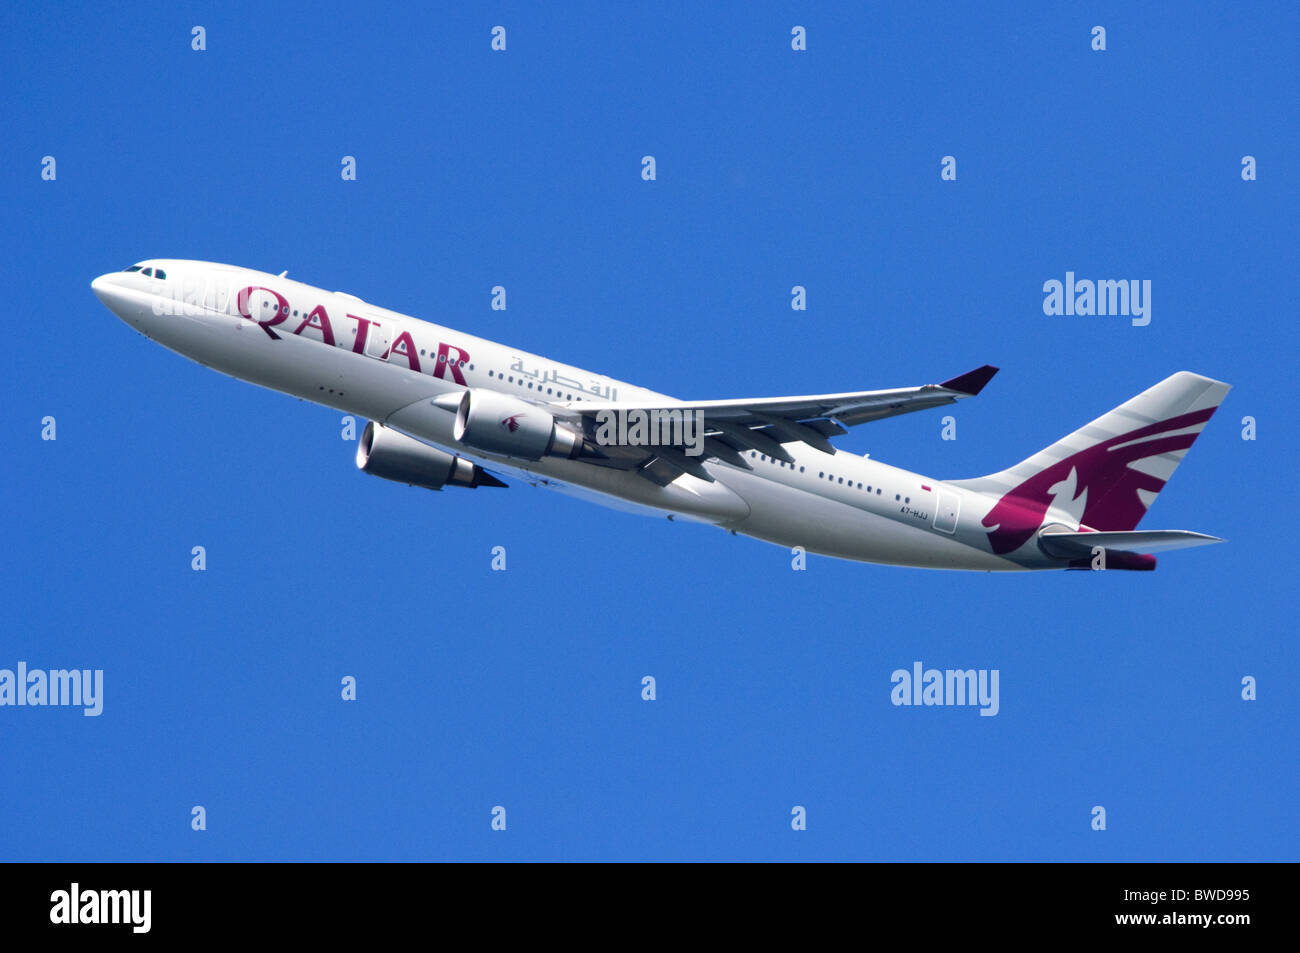 Airbus A330 operated by Qatar Airways climbing out after take off from London Heathrow Airport - Stock Image